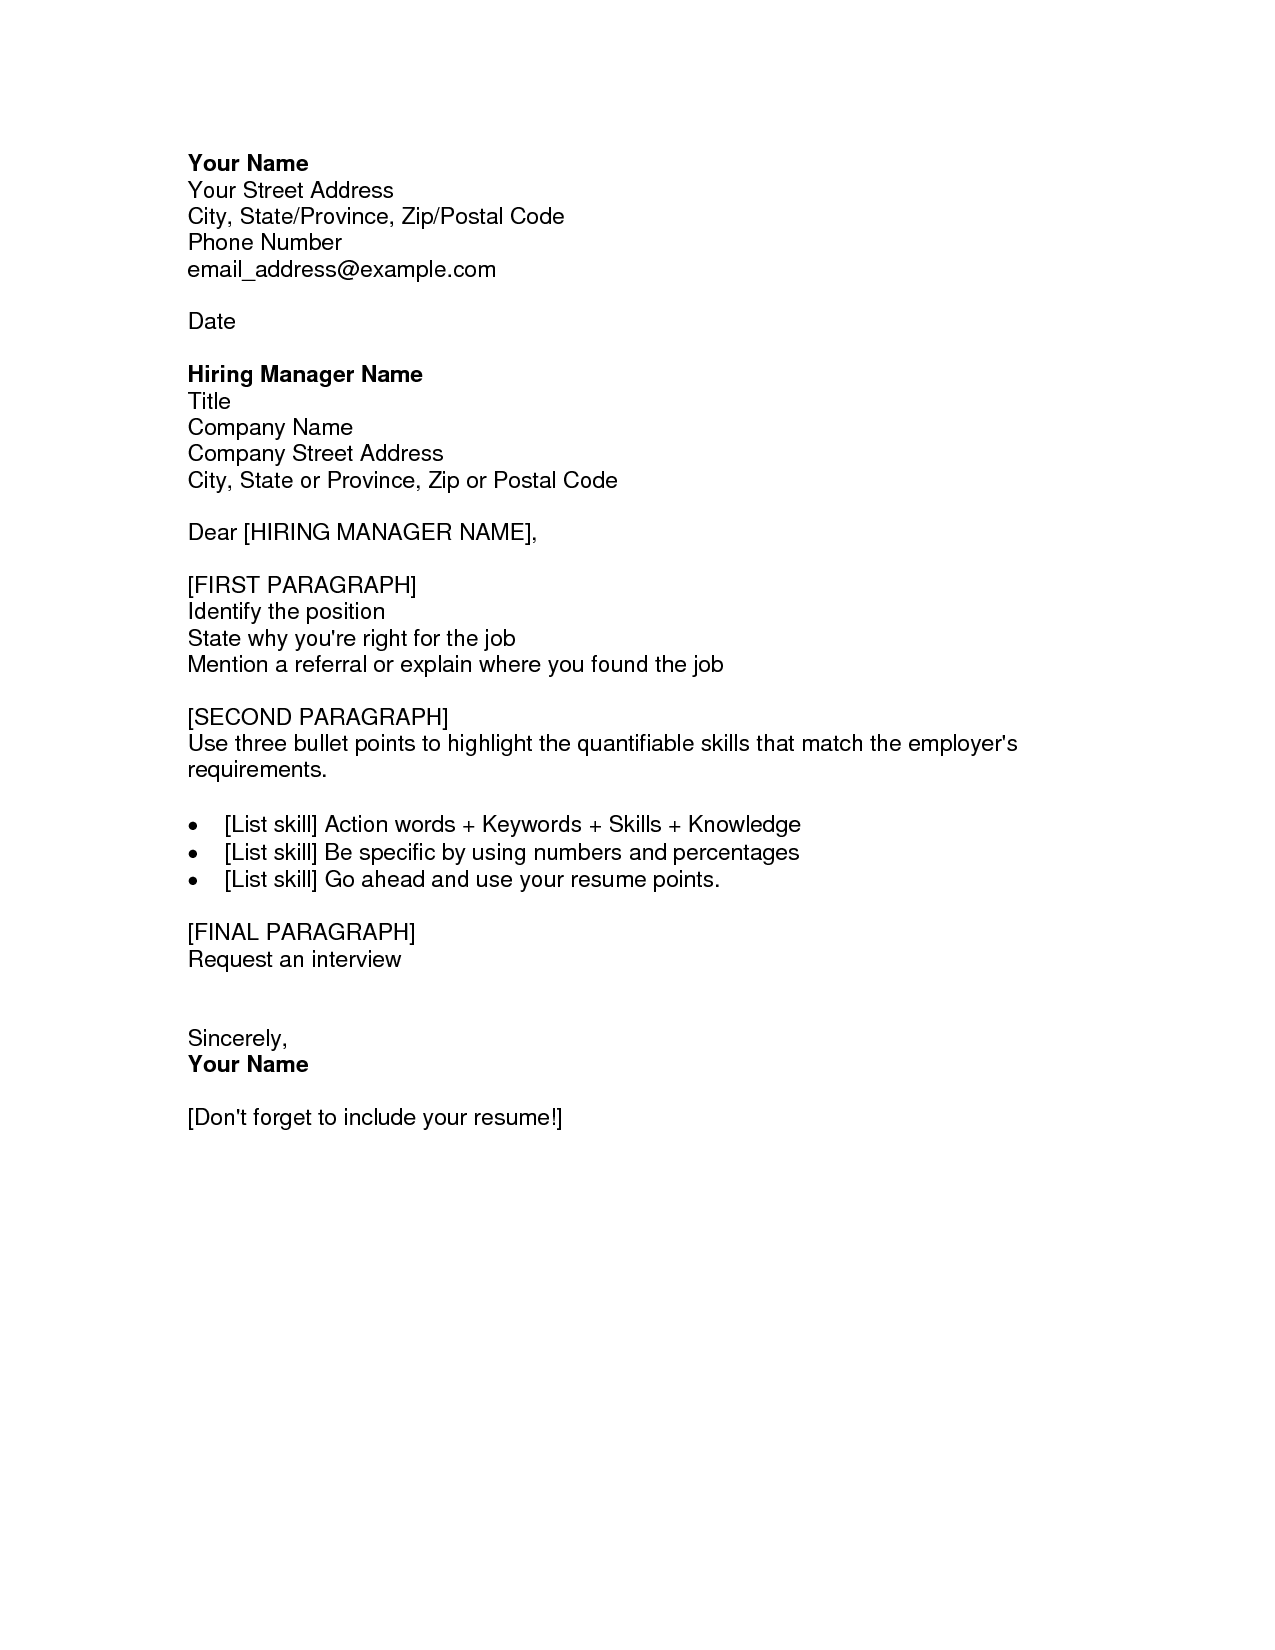 Resume Cover Letter Examples Fotolipcom Rich Image And Wallpaper - Cover Letter Examples For Resume